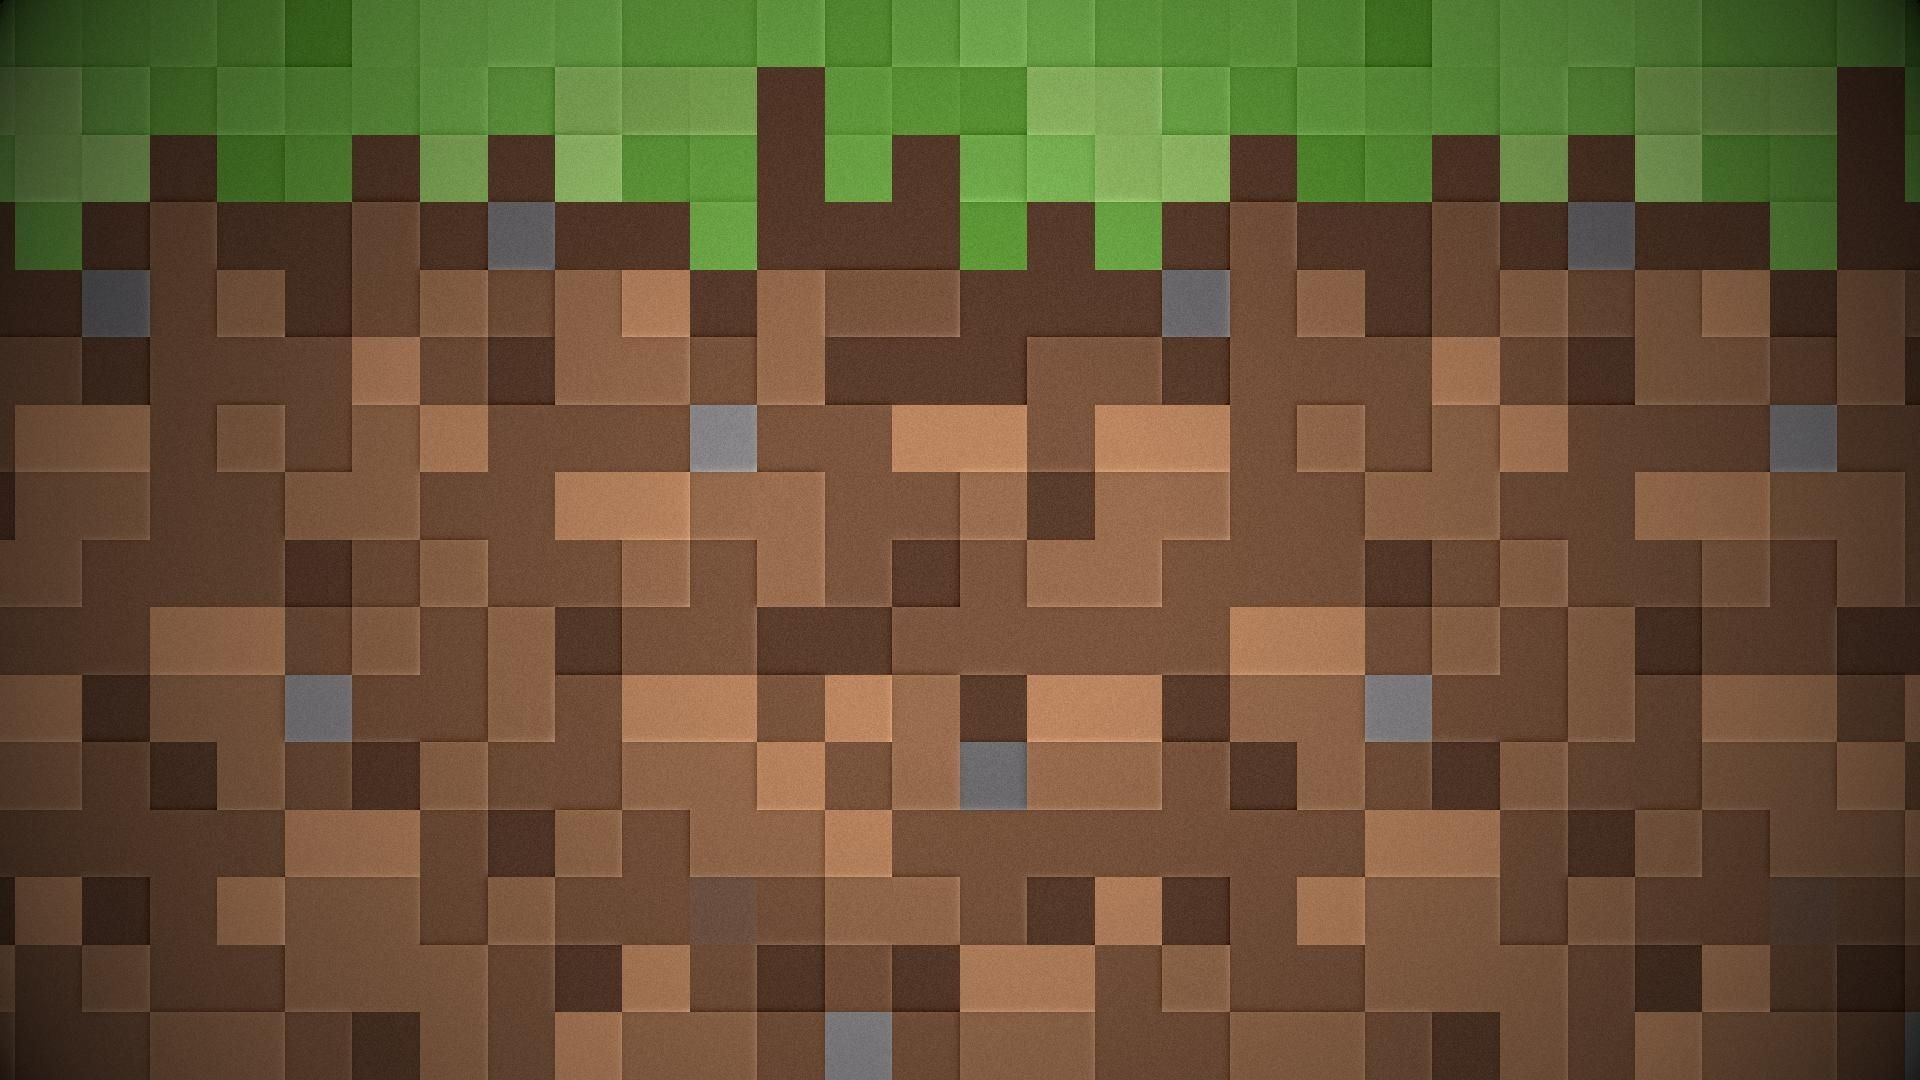 minecraft background download free beautiful backgrounds for .